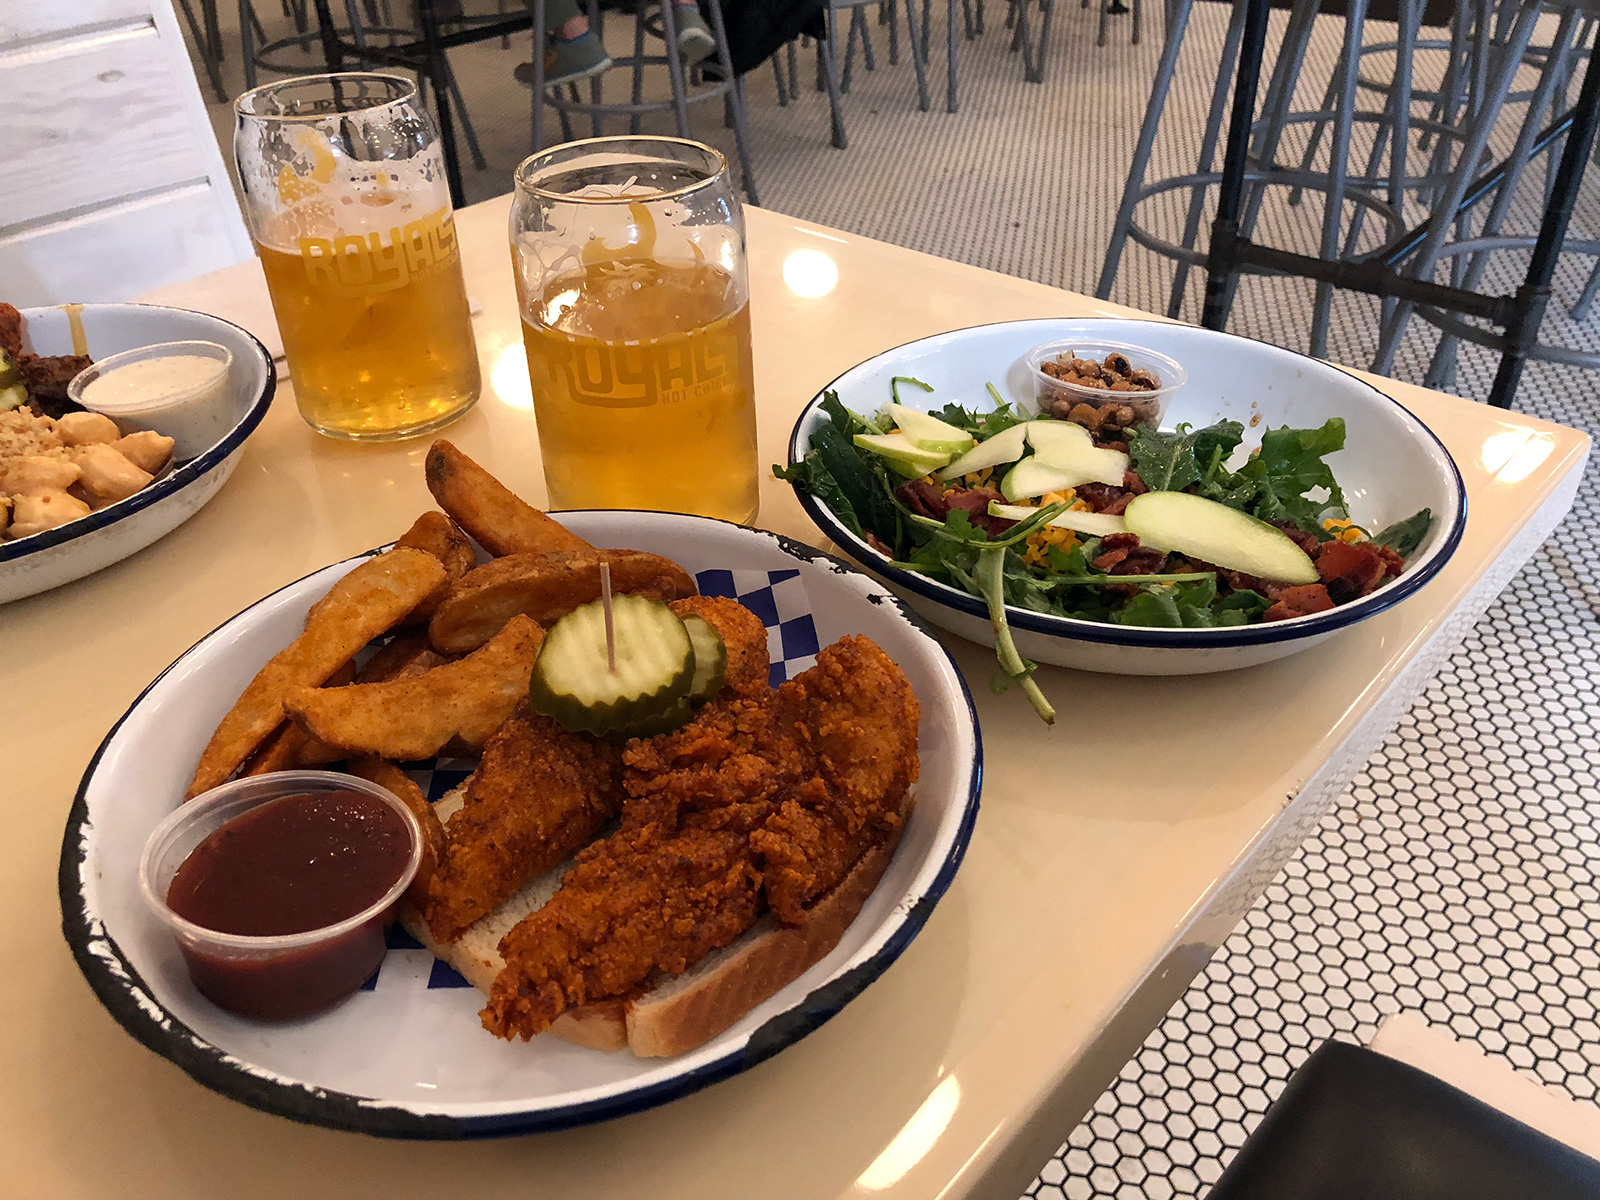 Royals Hot Chicken in Louisville by Jets Like Taxis